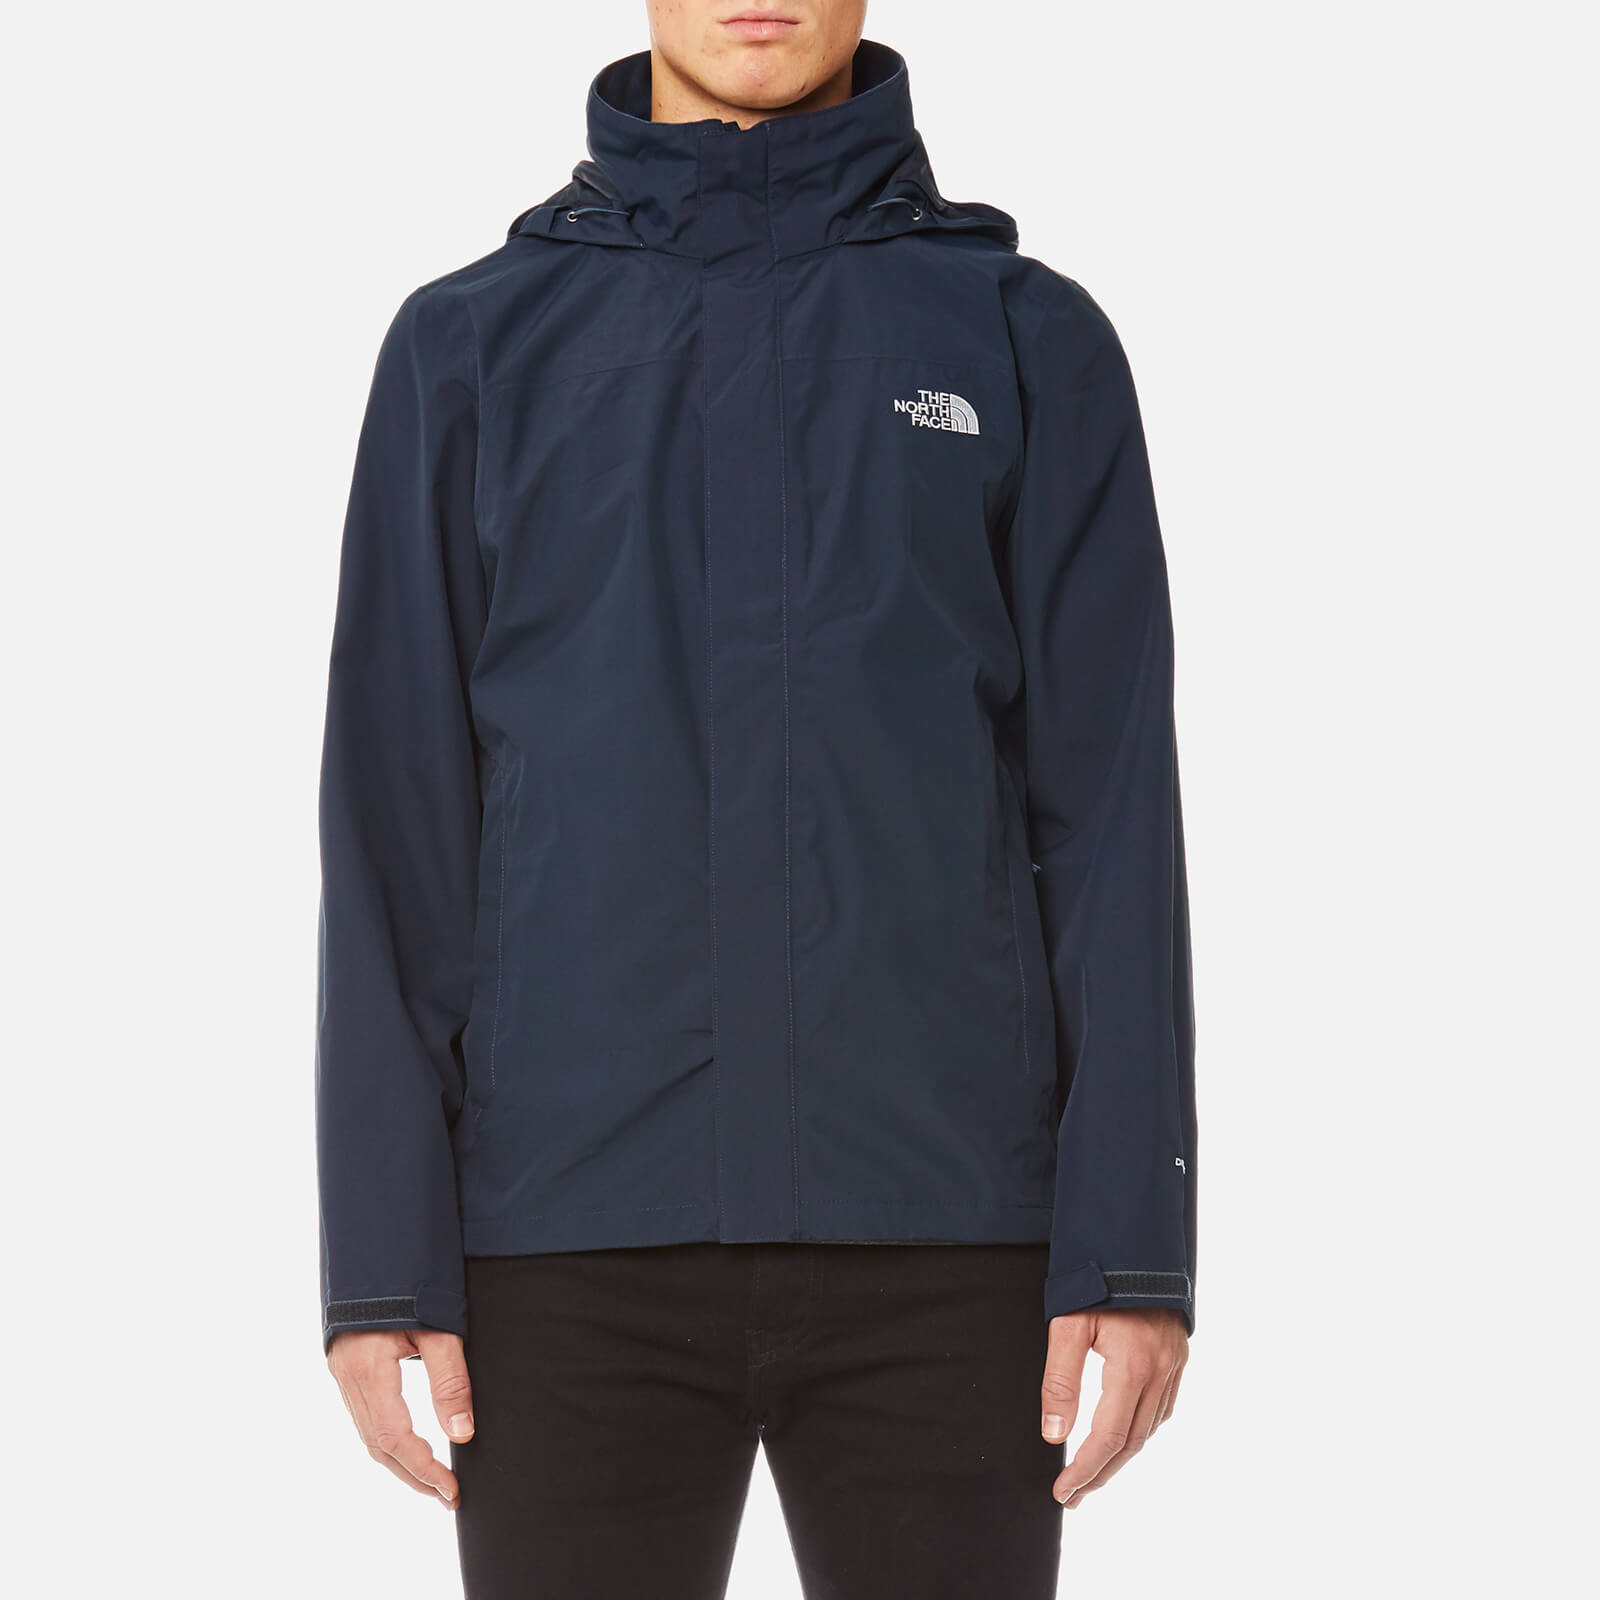 huge discount 79355 b5a05 The North Face Men's Sangro Jacket - Urban Navy